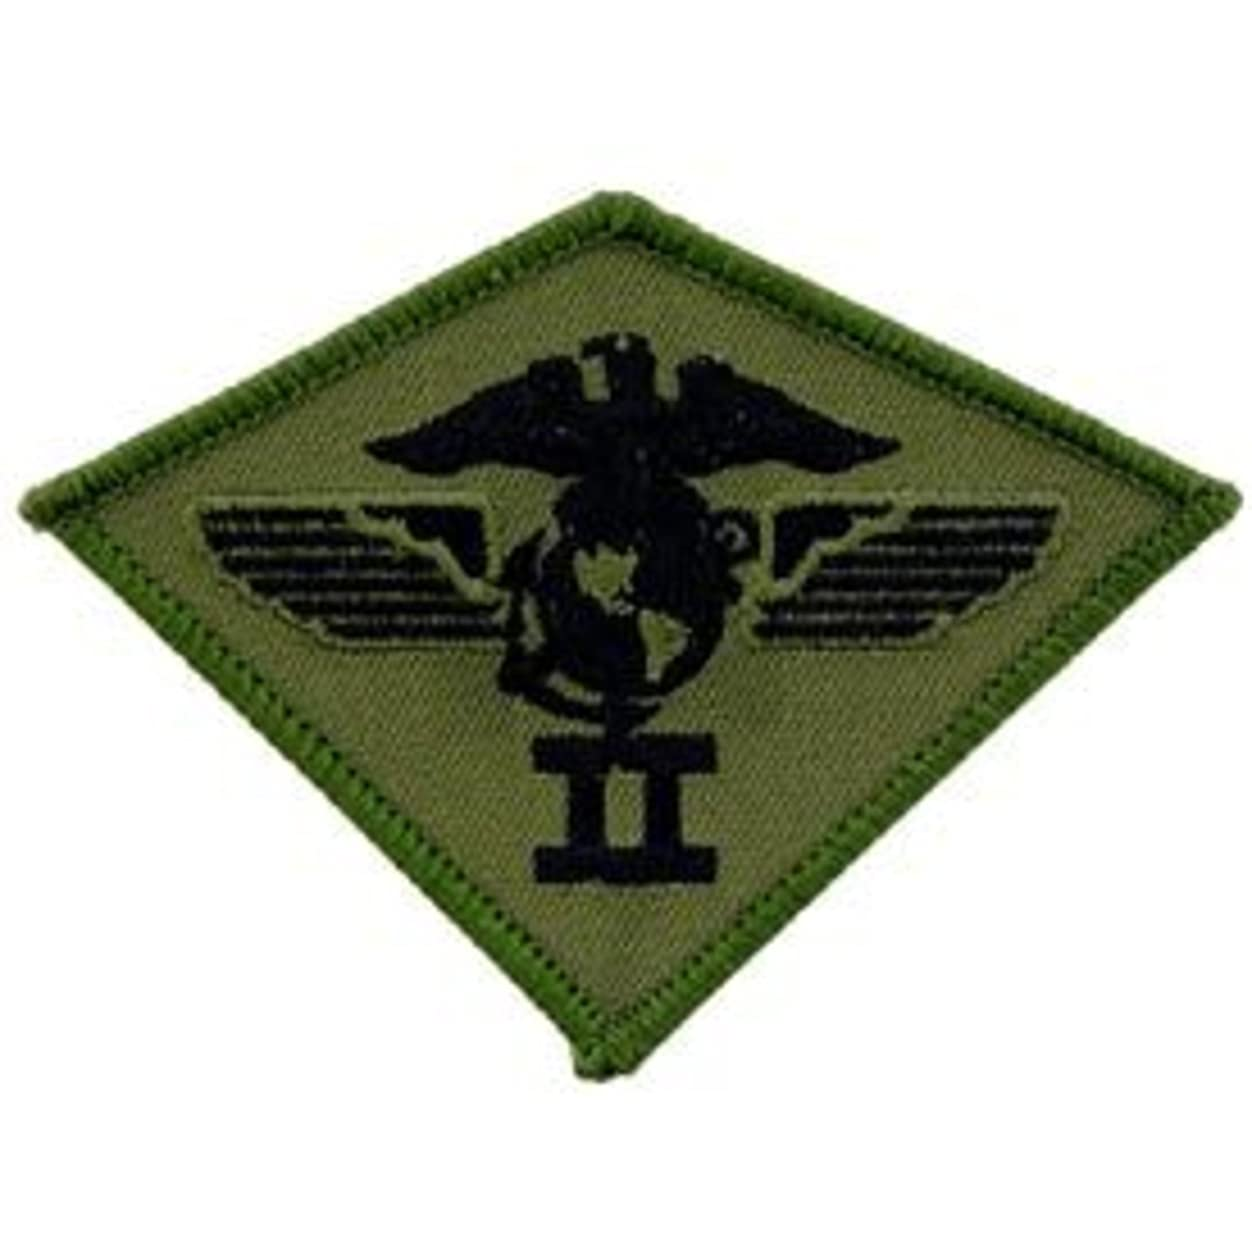 作成する噴水ラフトEagleEmblems pm0873?patch-usmc、02nd Airwing ( Subdued ) ( 3.75?